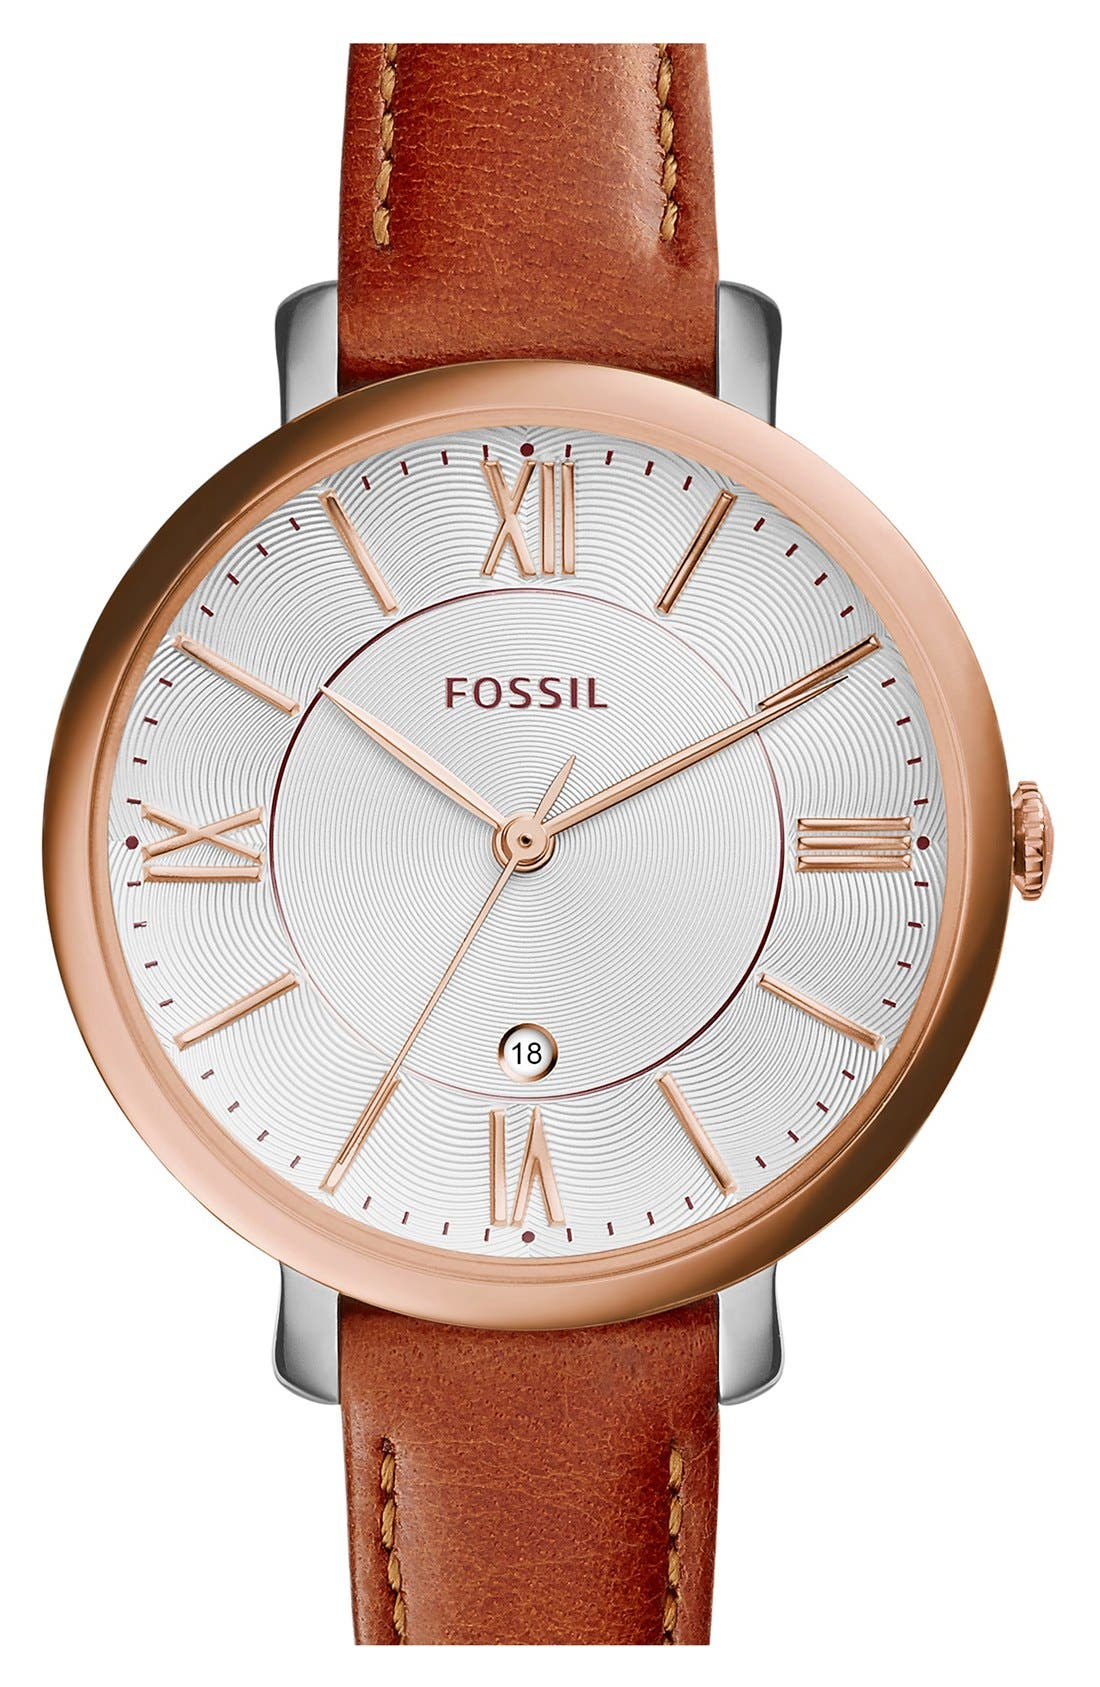 FOSSIL, 'Jacqueline' Round Leather Strap Watch, 36mm, Main thumbnail 1, color, BROWN/ ROSE GOLD